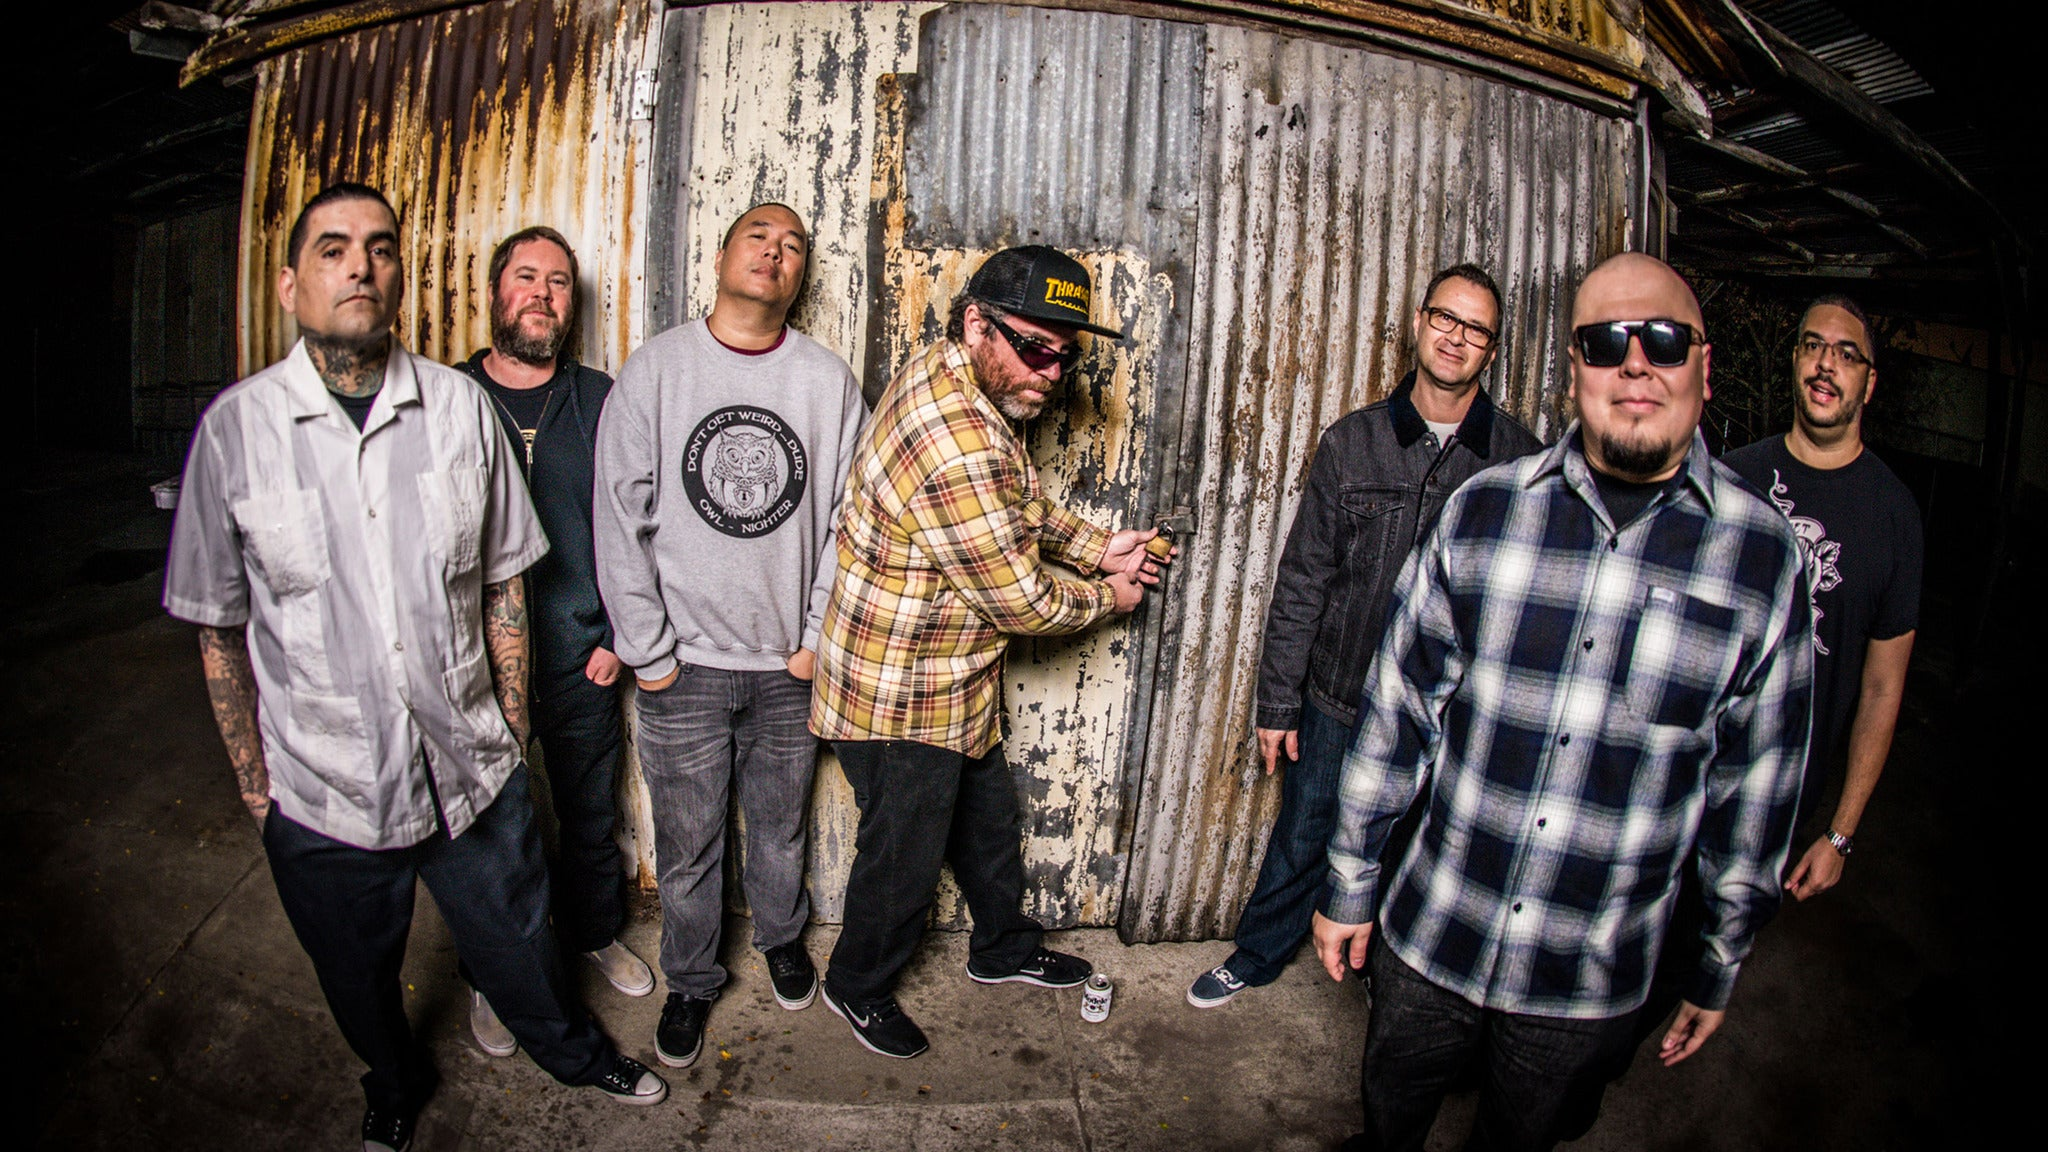 Long Beach Dub Allstars, the Aggrolites, Tomorrow's Bad Seeds